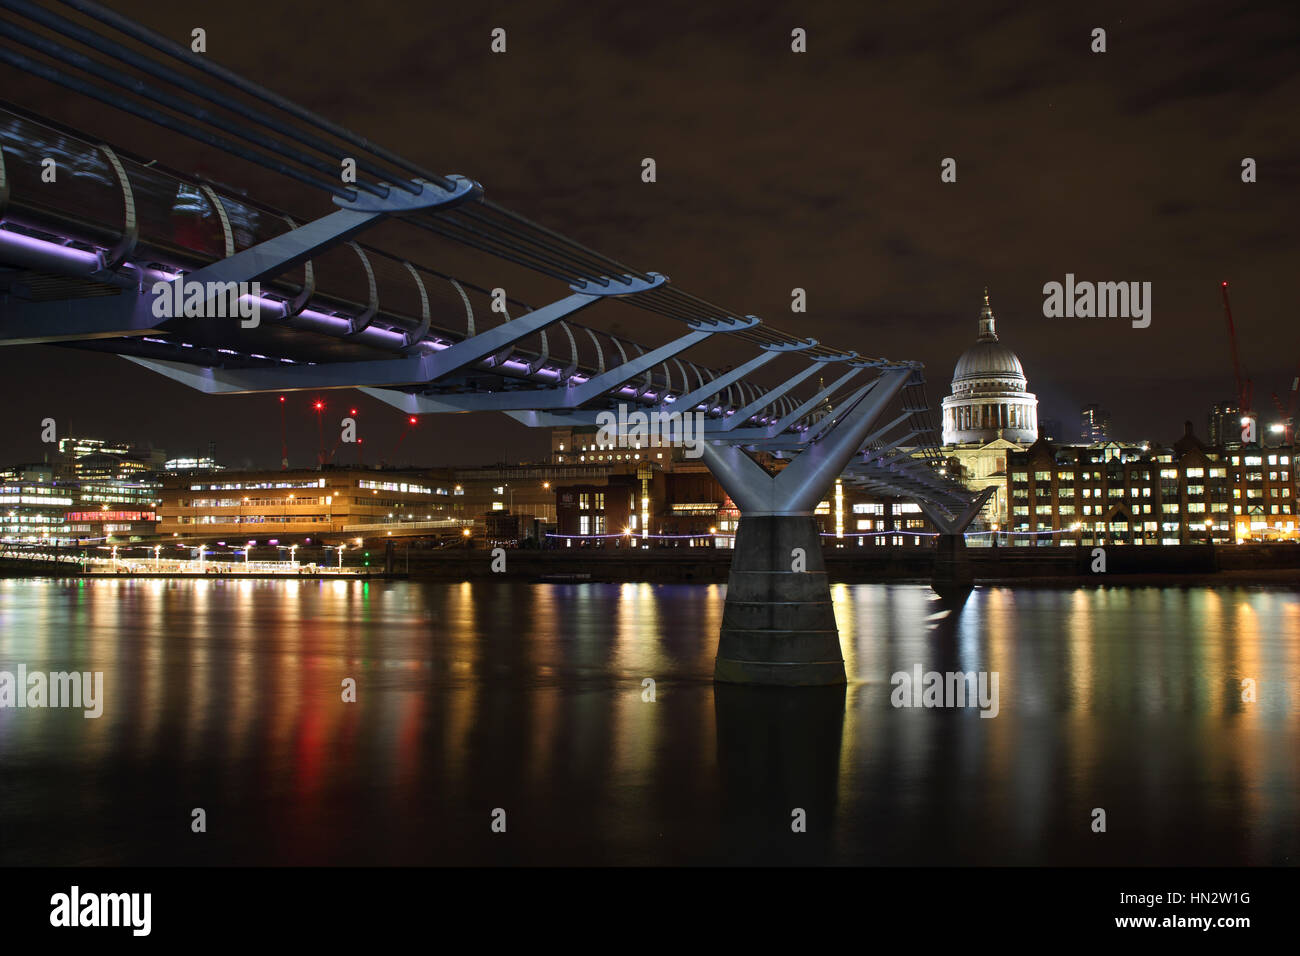 London Millennium Footbridge across the Thames between Tate modern and St Paul's Cathedral - Stock Image